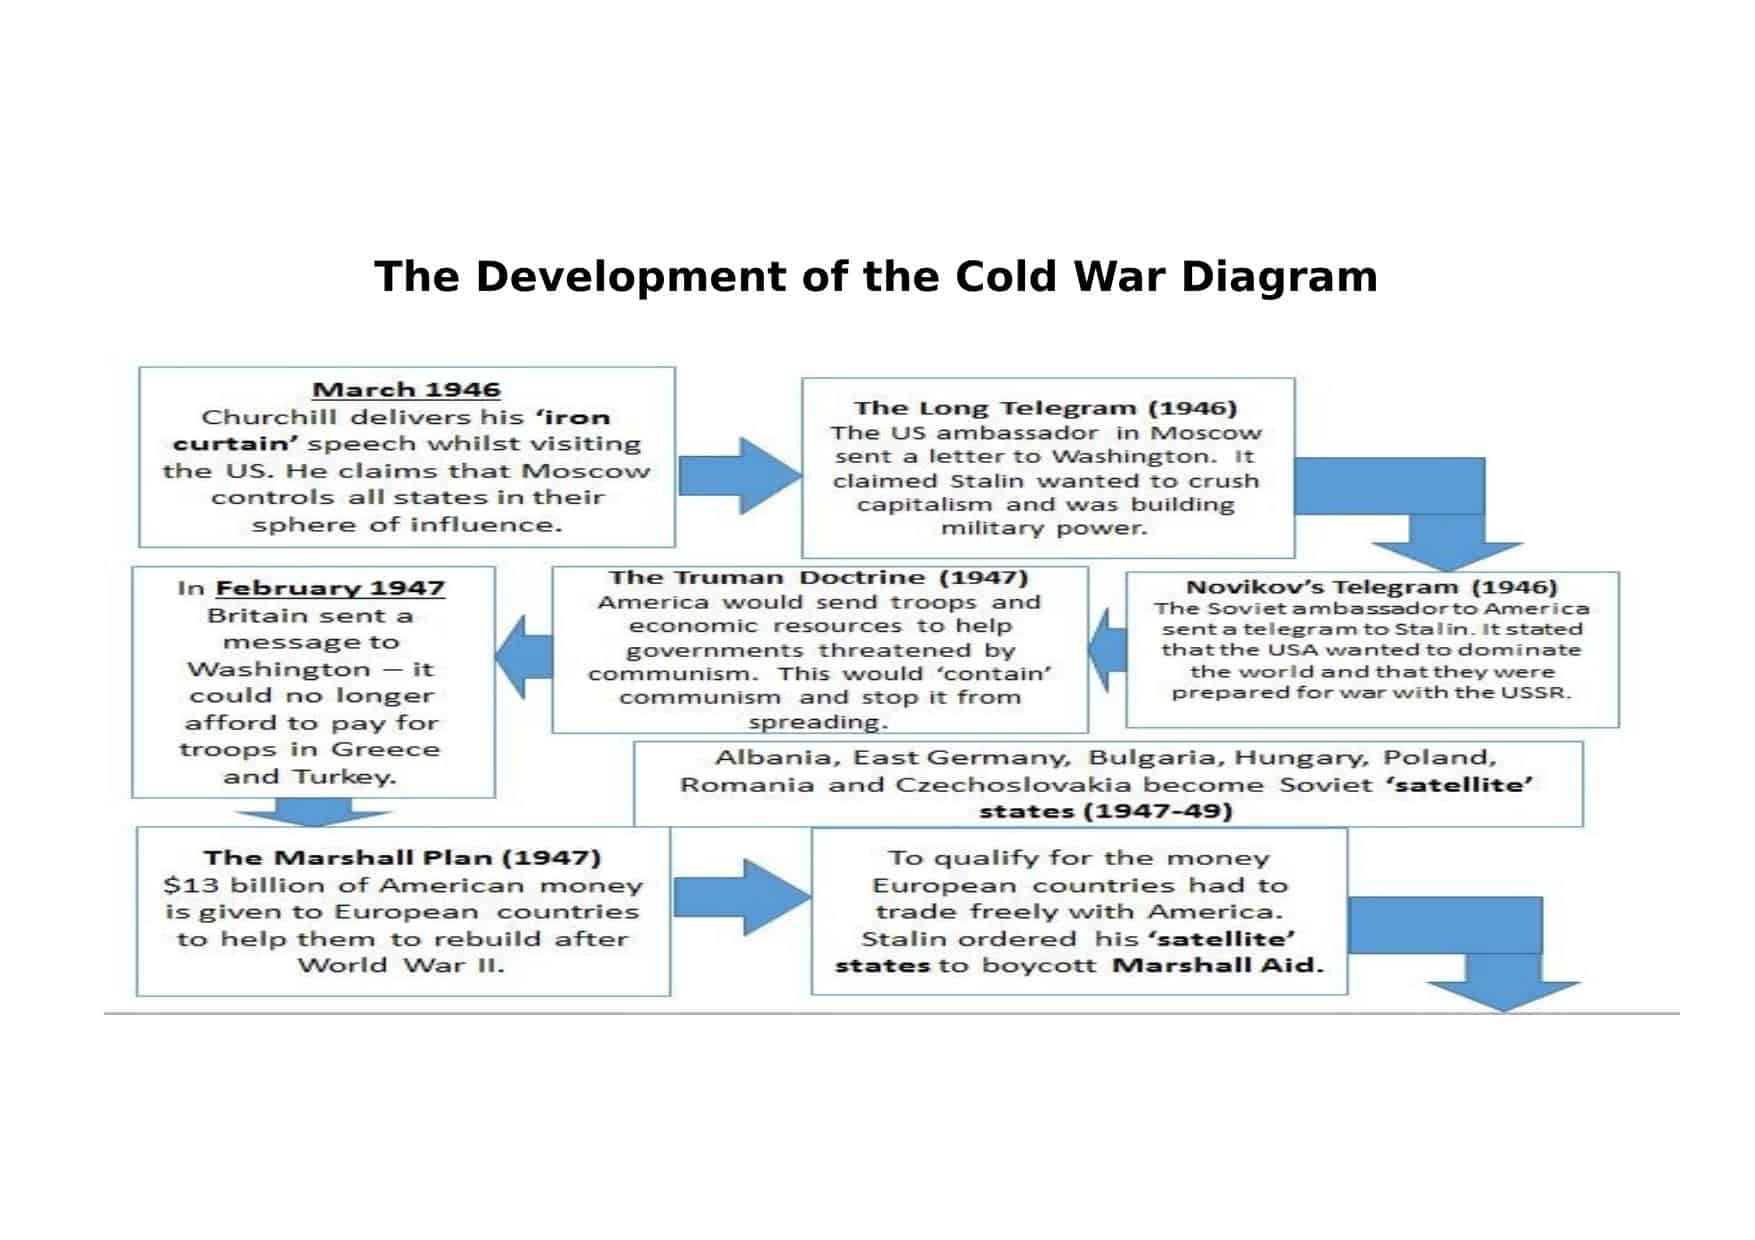 cold war diagram gcse history worksheets | lesson plans, powerpoints ... defrost timer wiring diagram cold room